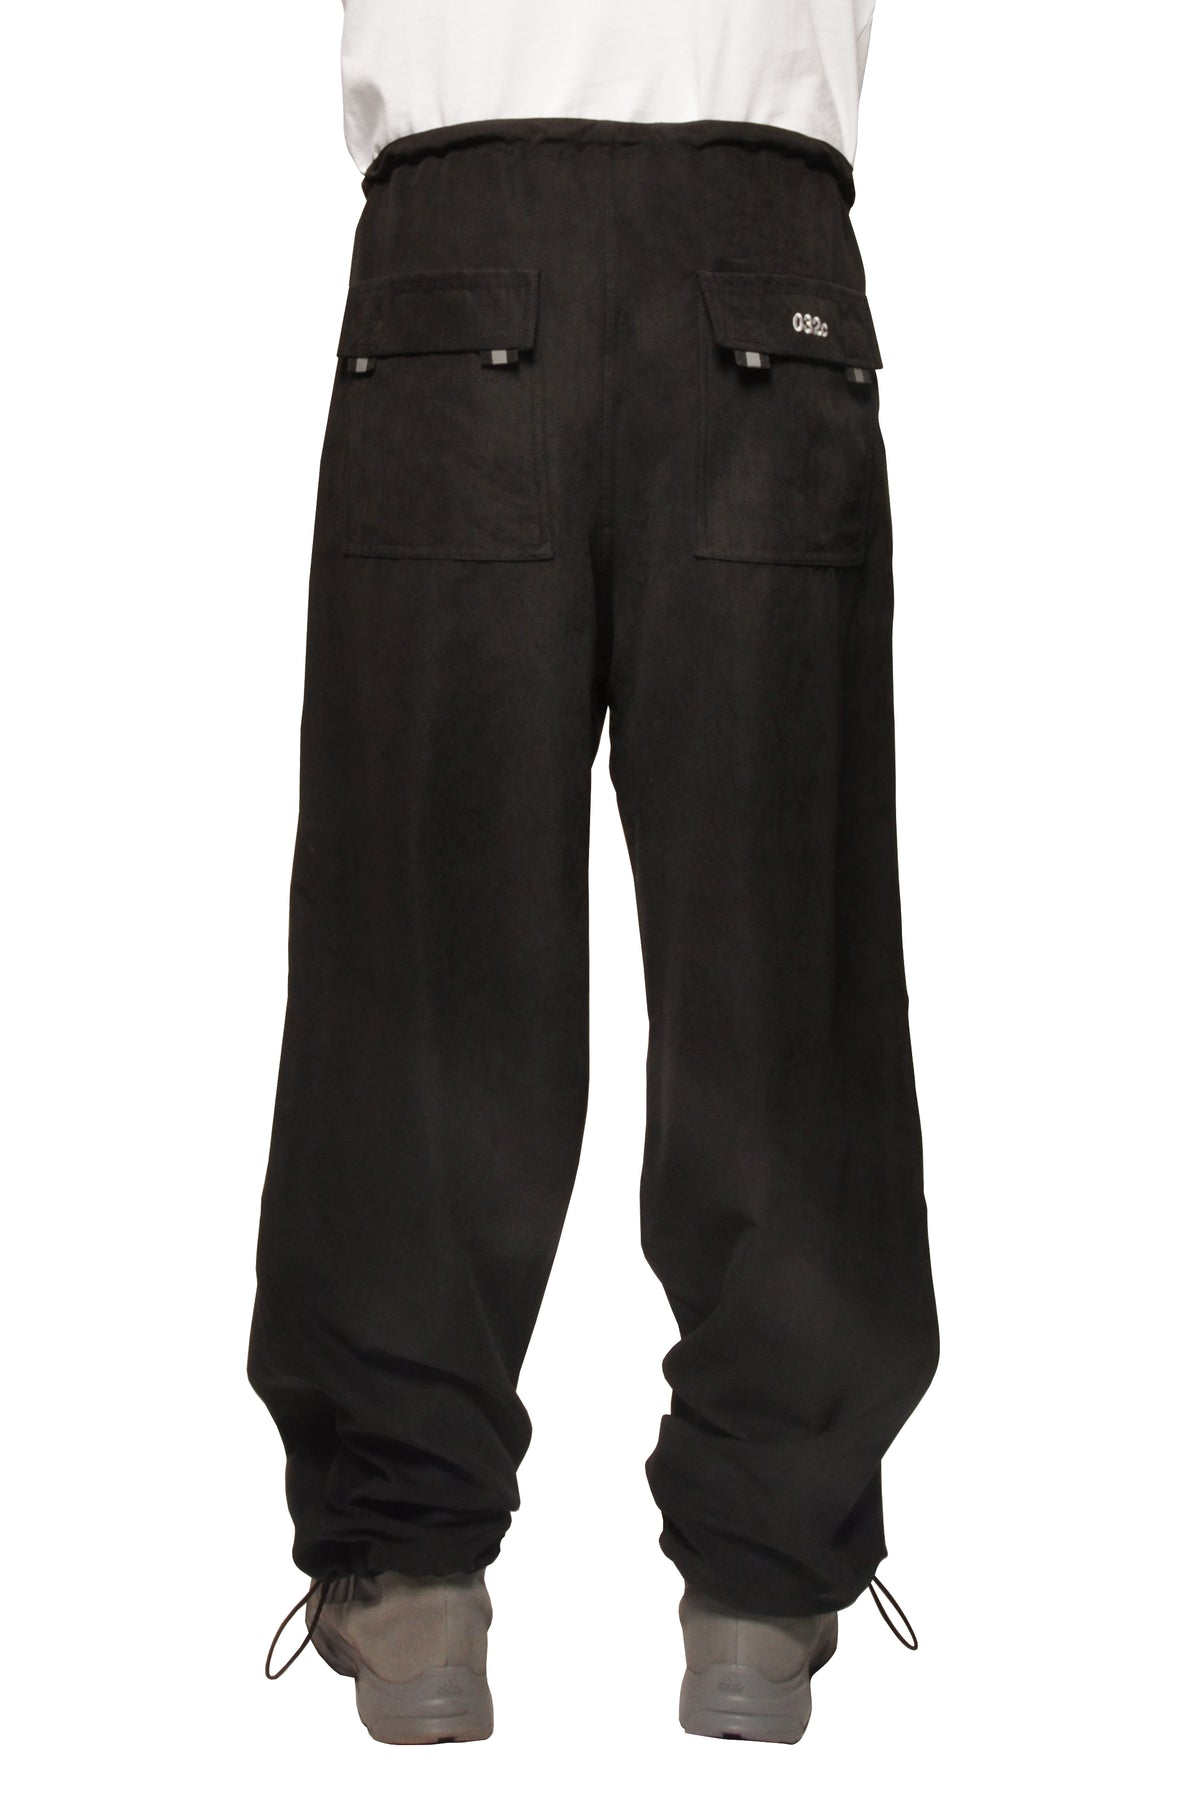 032c COSMIC WORKSHOP 'Rave' Pant Black - 032c